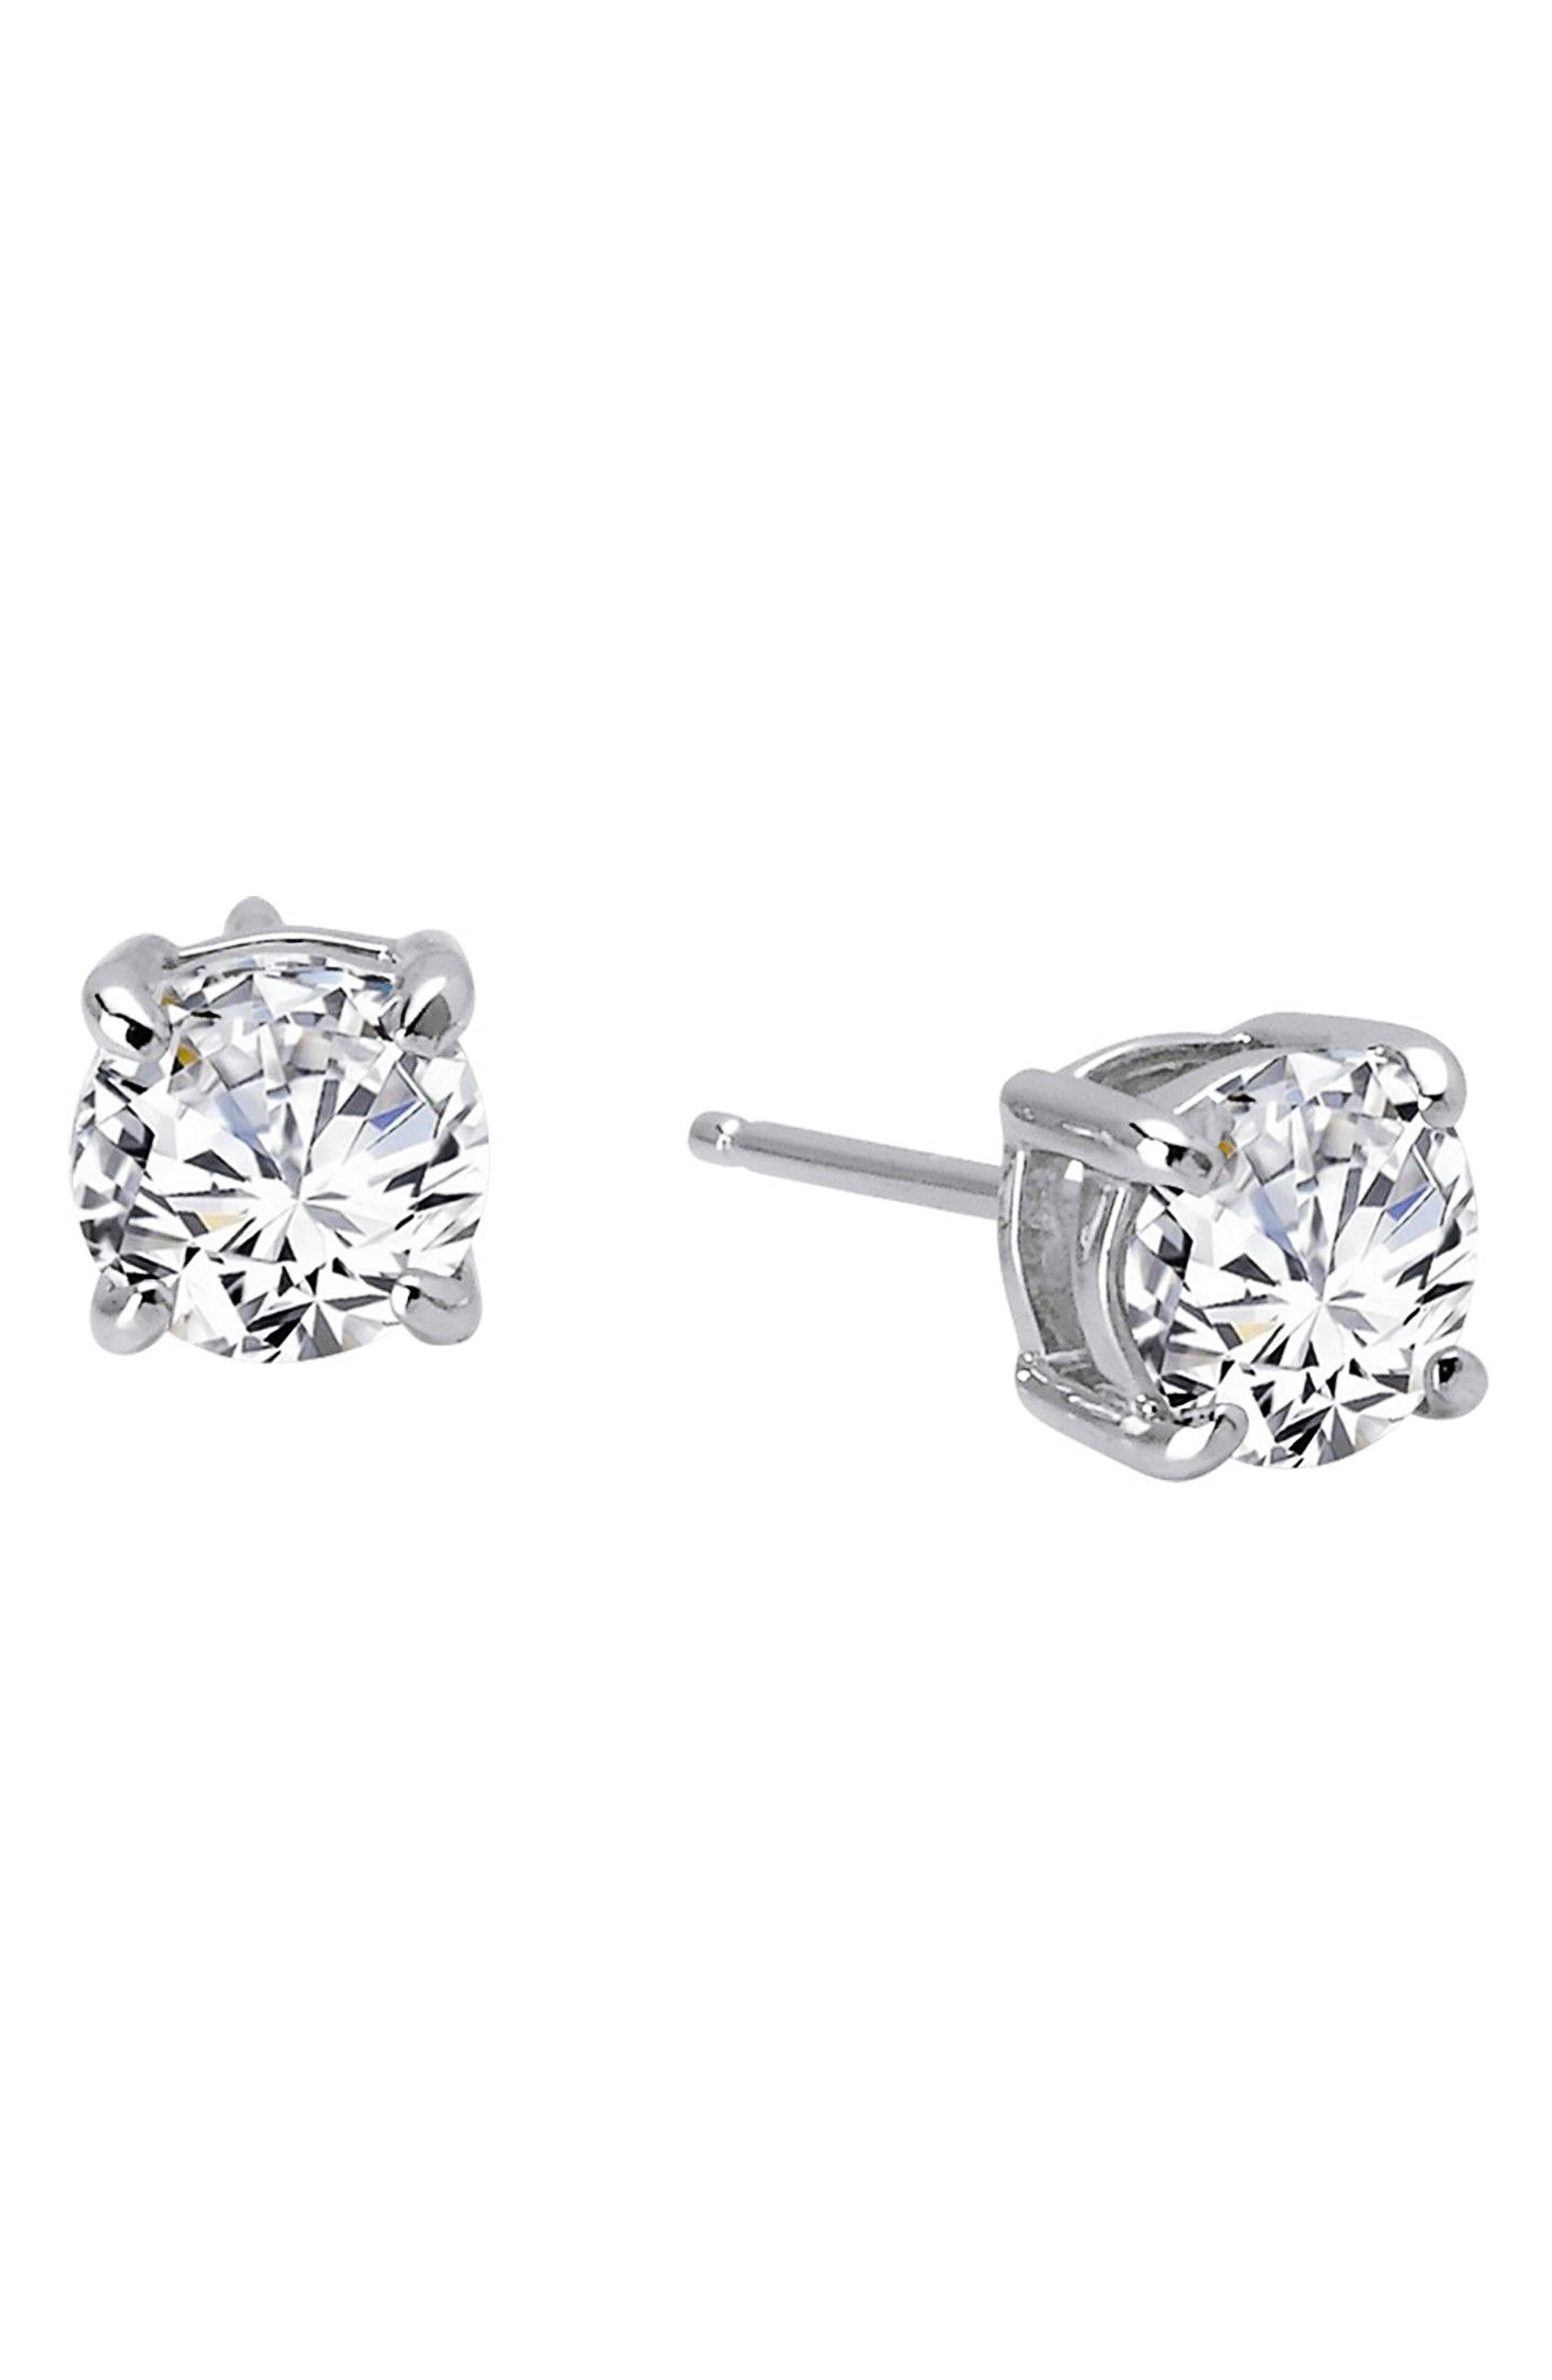 Simulated Diamond Stud Earrings,                             Alternate thumbnail 3, color,                             SILVER/ CLEAR